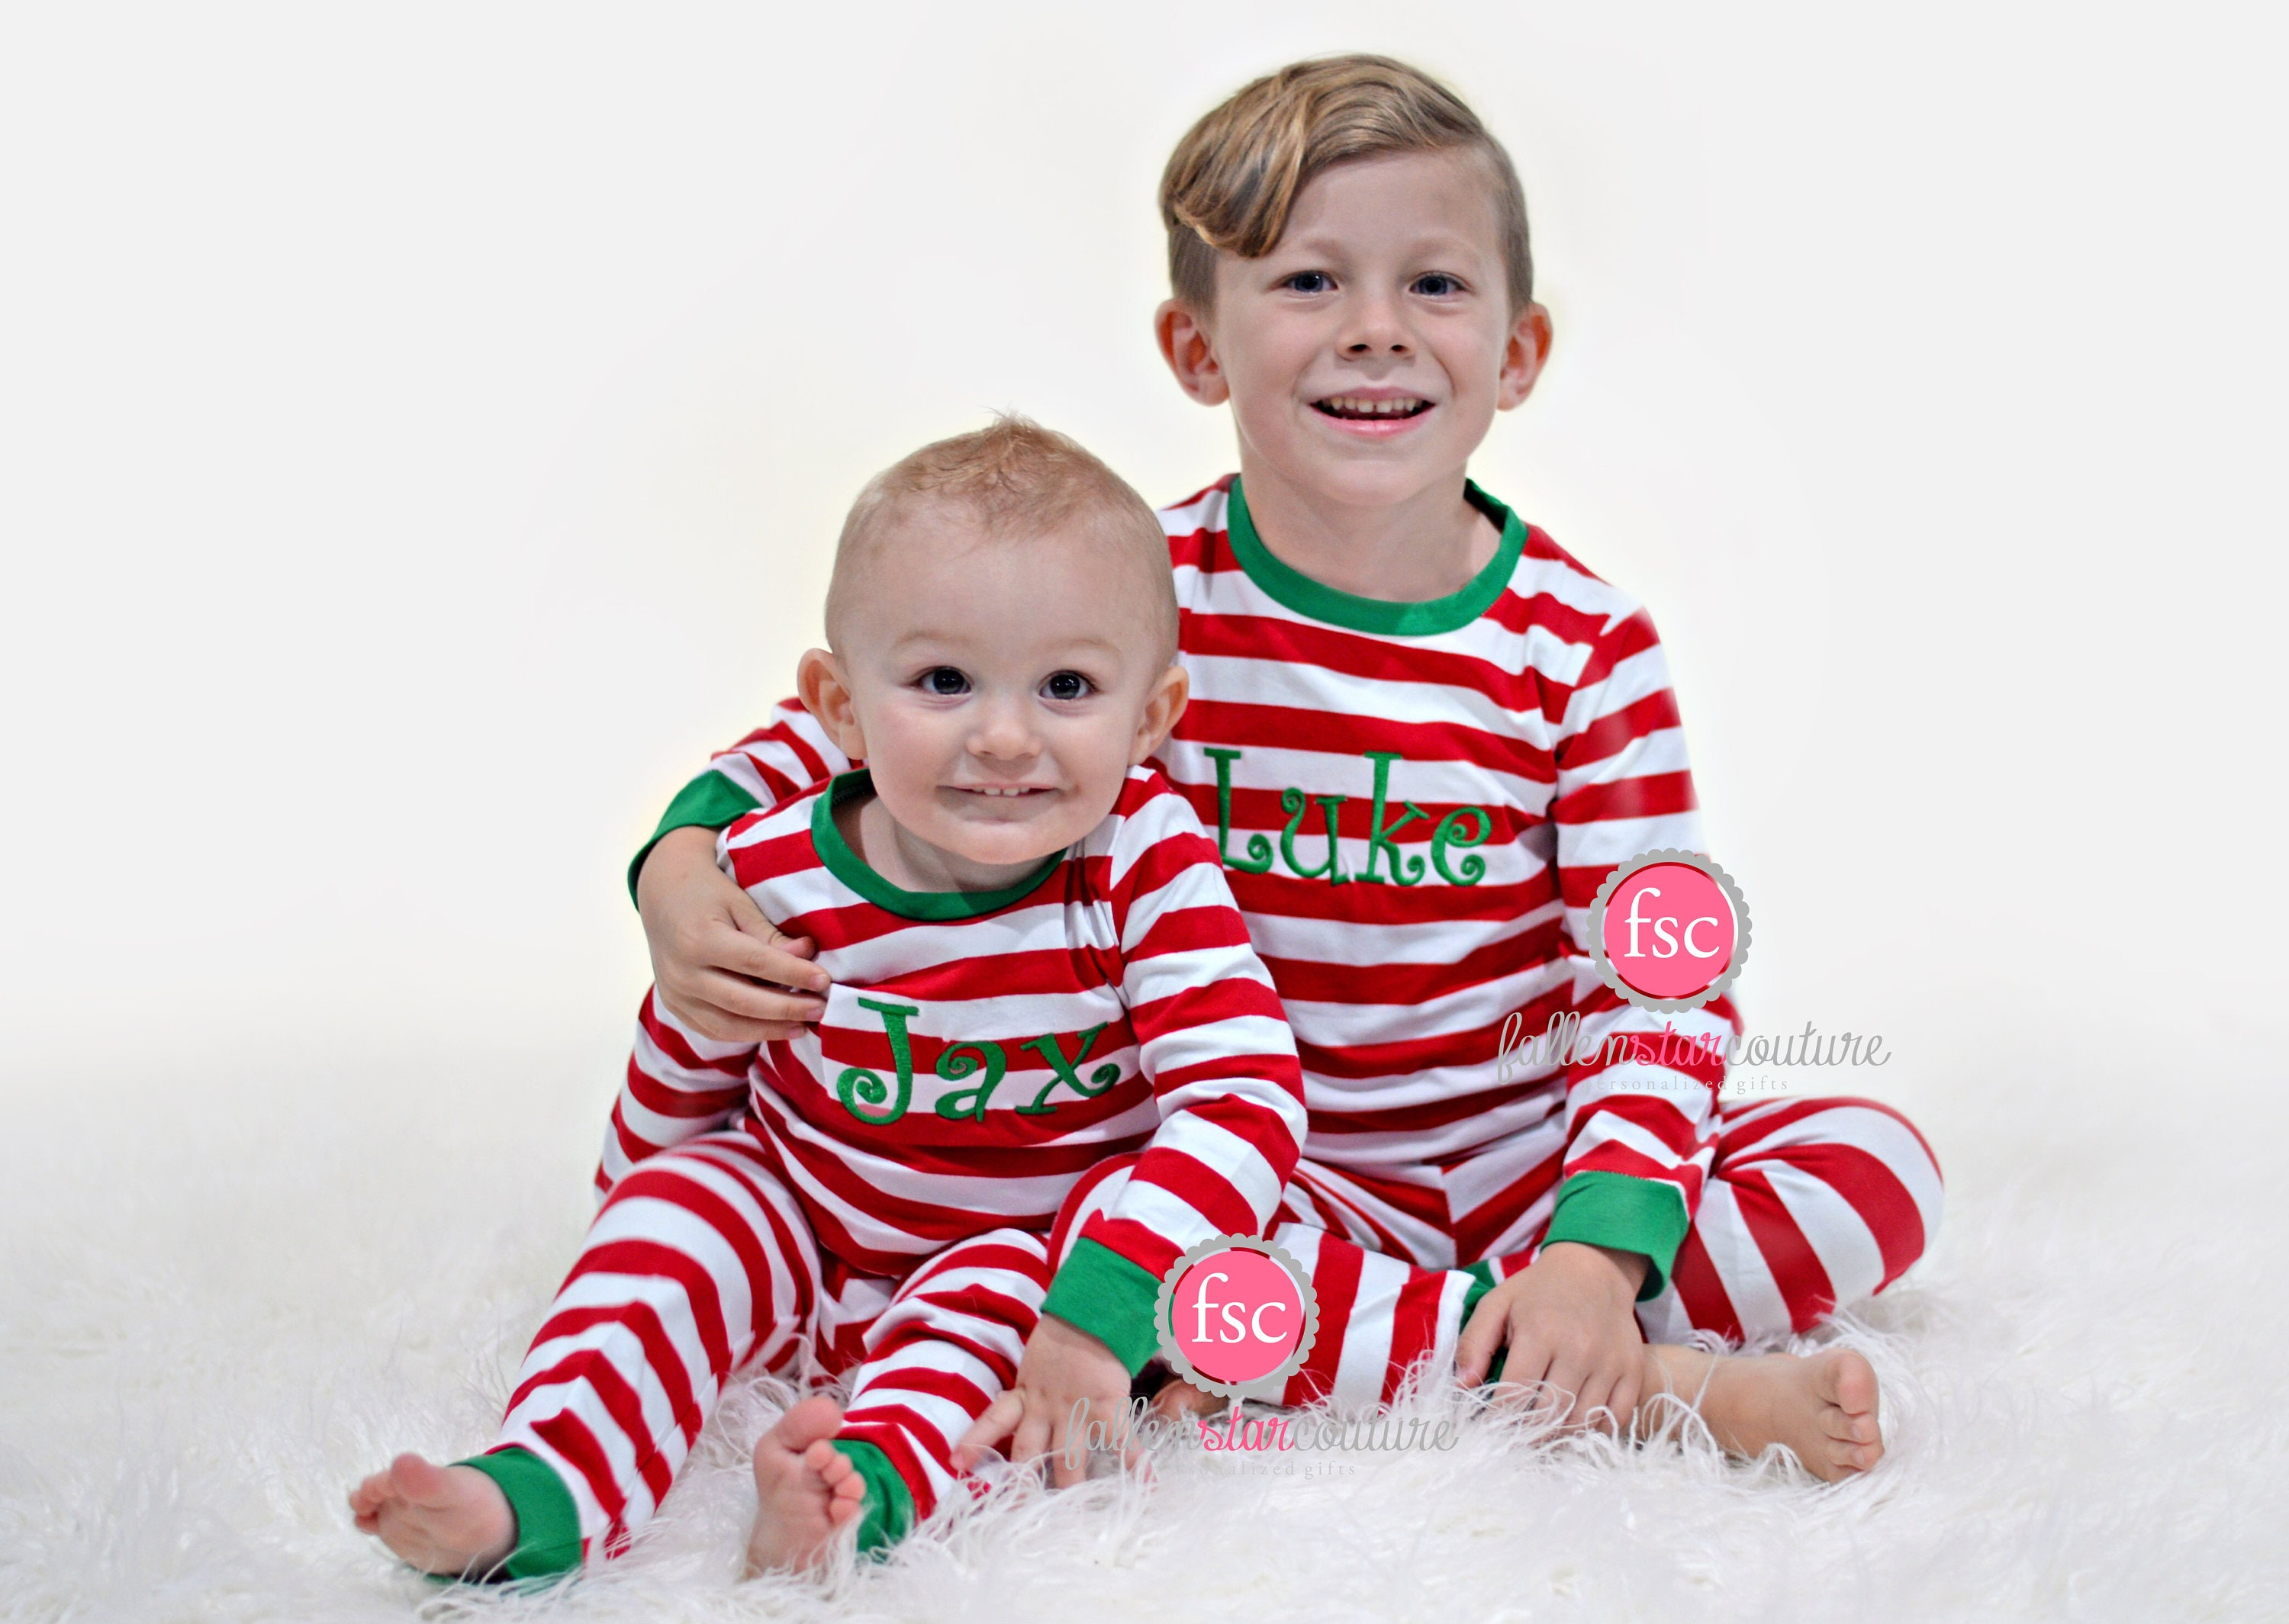 Kids Christmas Pajamas.Personalized Christmas Pajamas Kids Christmas Pajamas